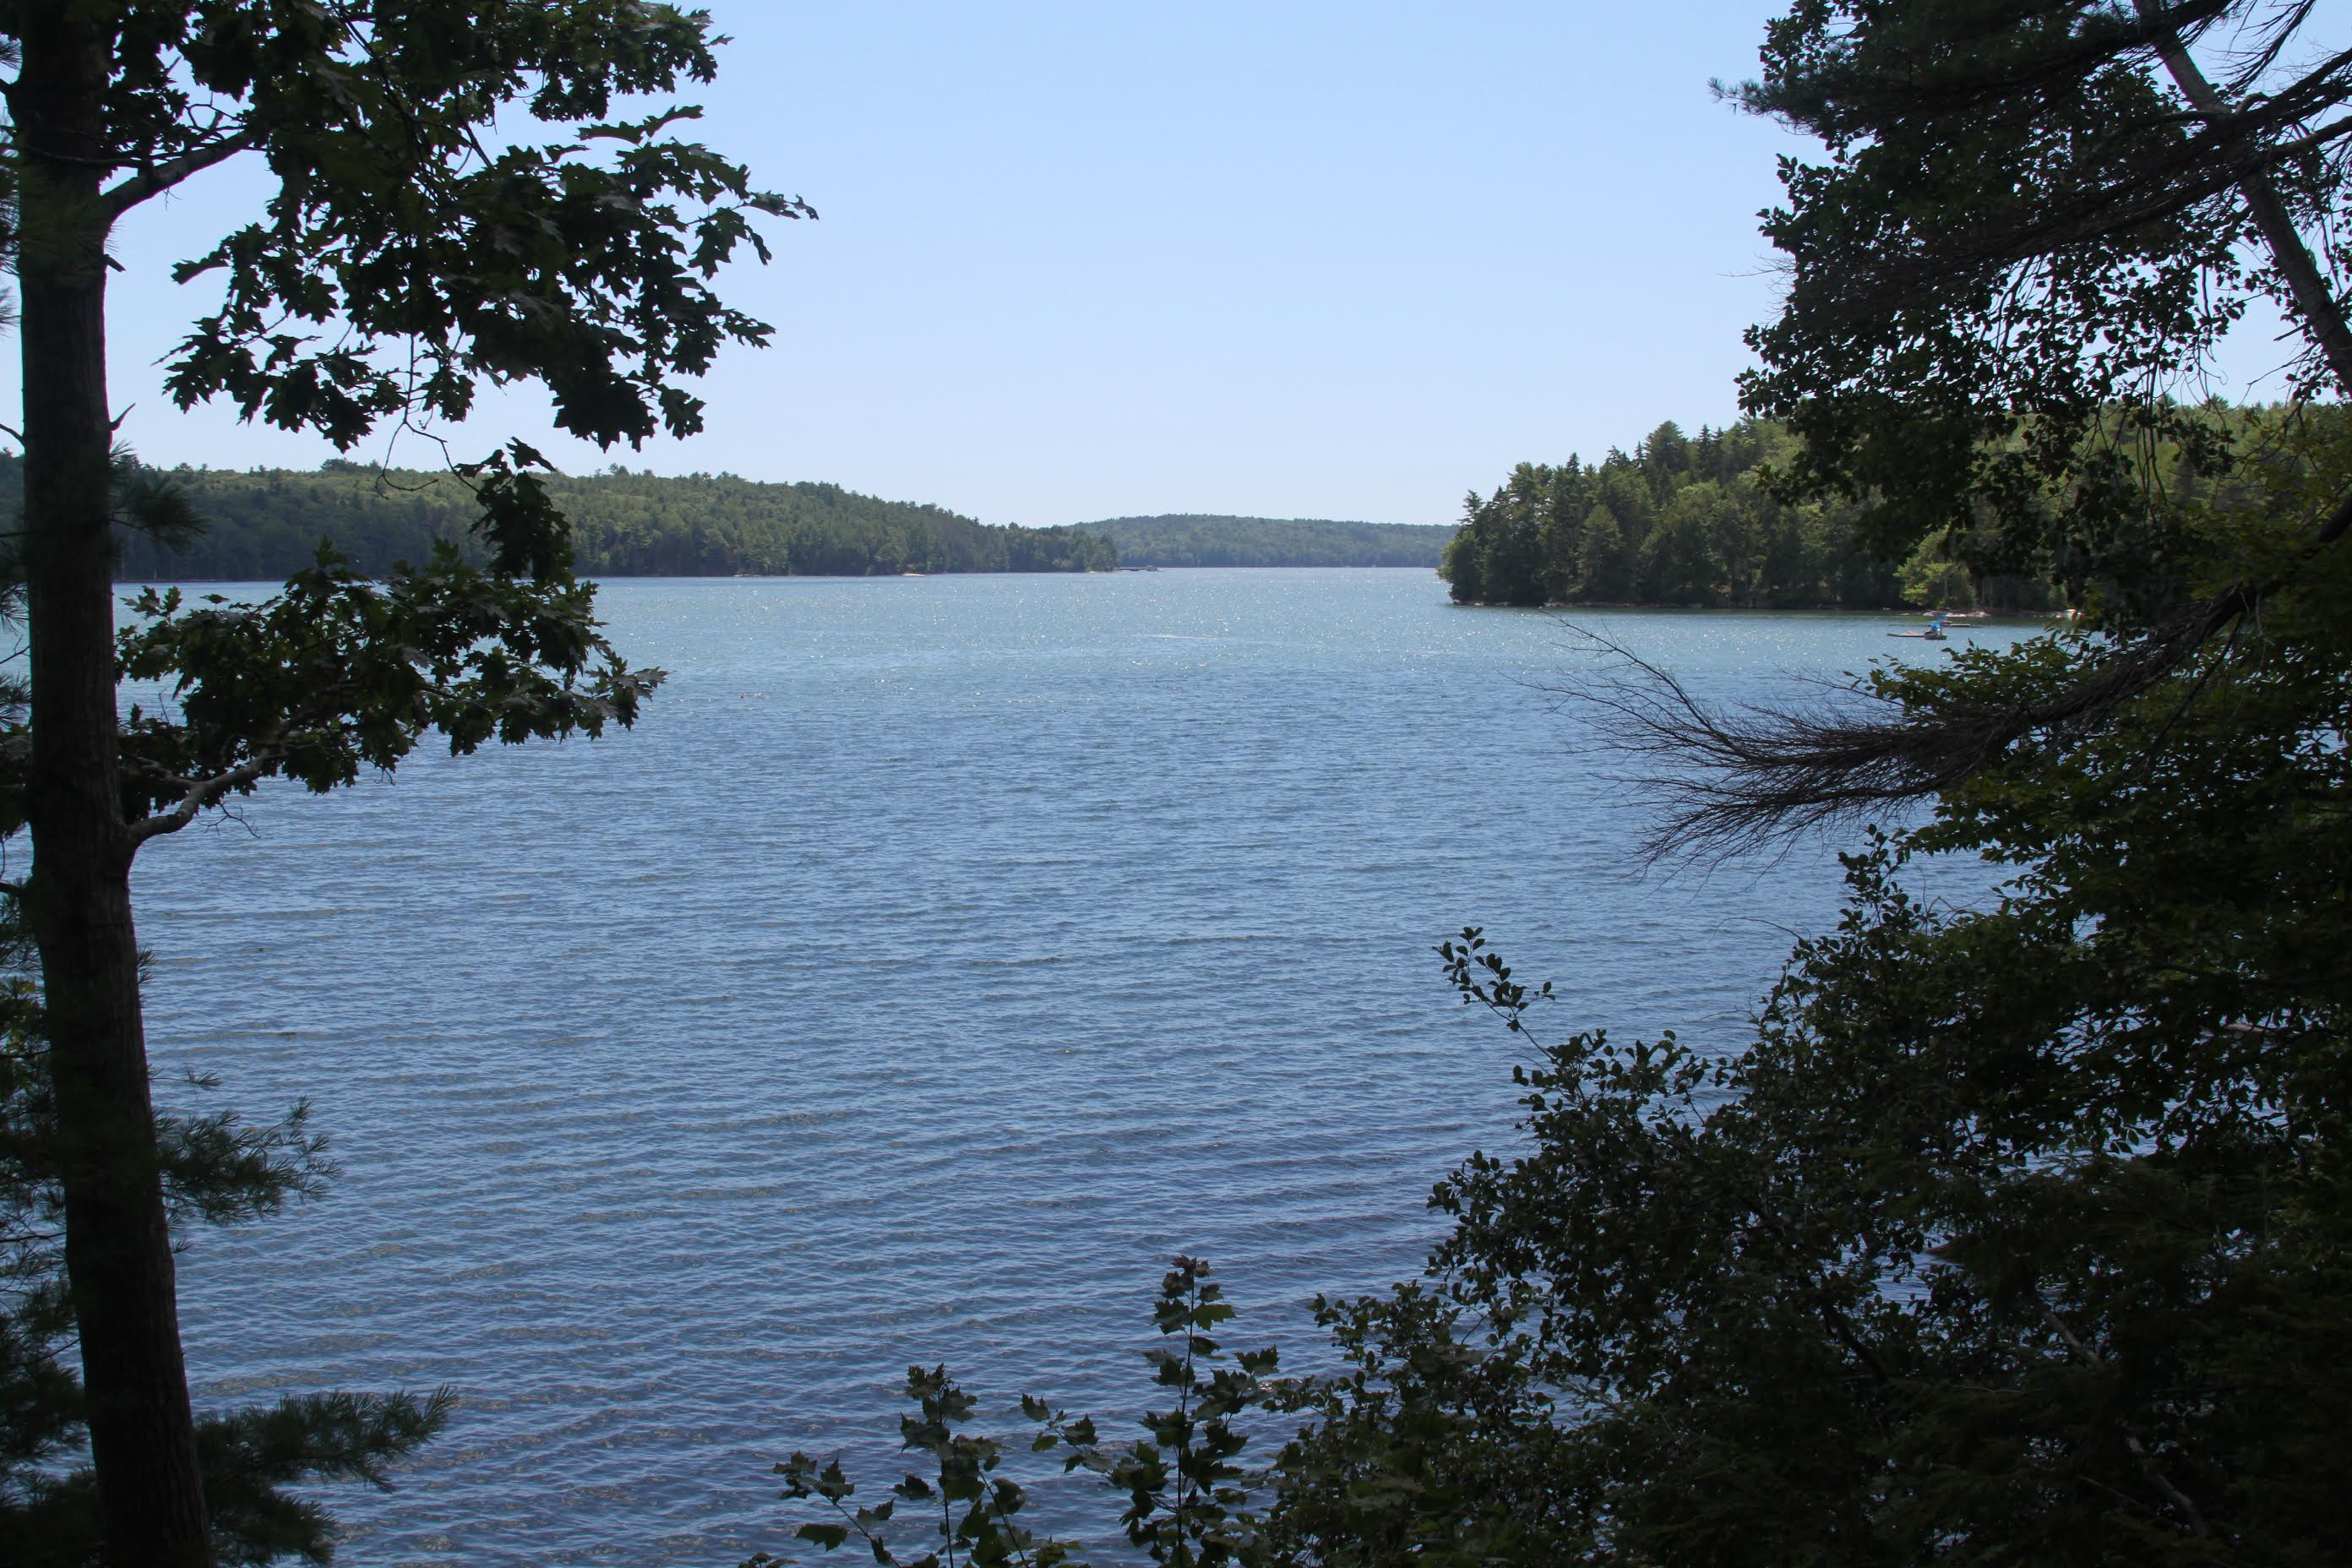 Land for Sale at 0 Emerson Farms Road 0 Emerson Farms Rd Edgecomb, Maine 04556 United States